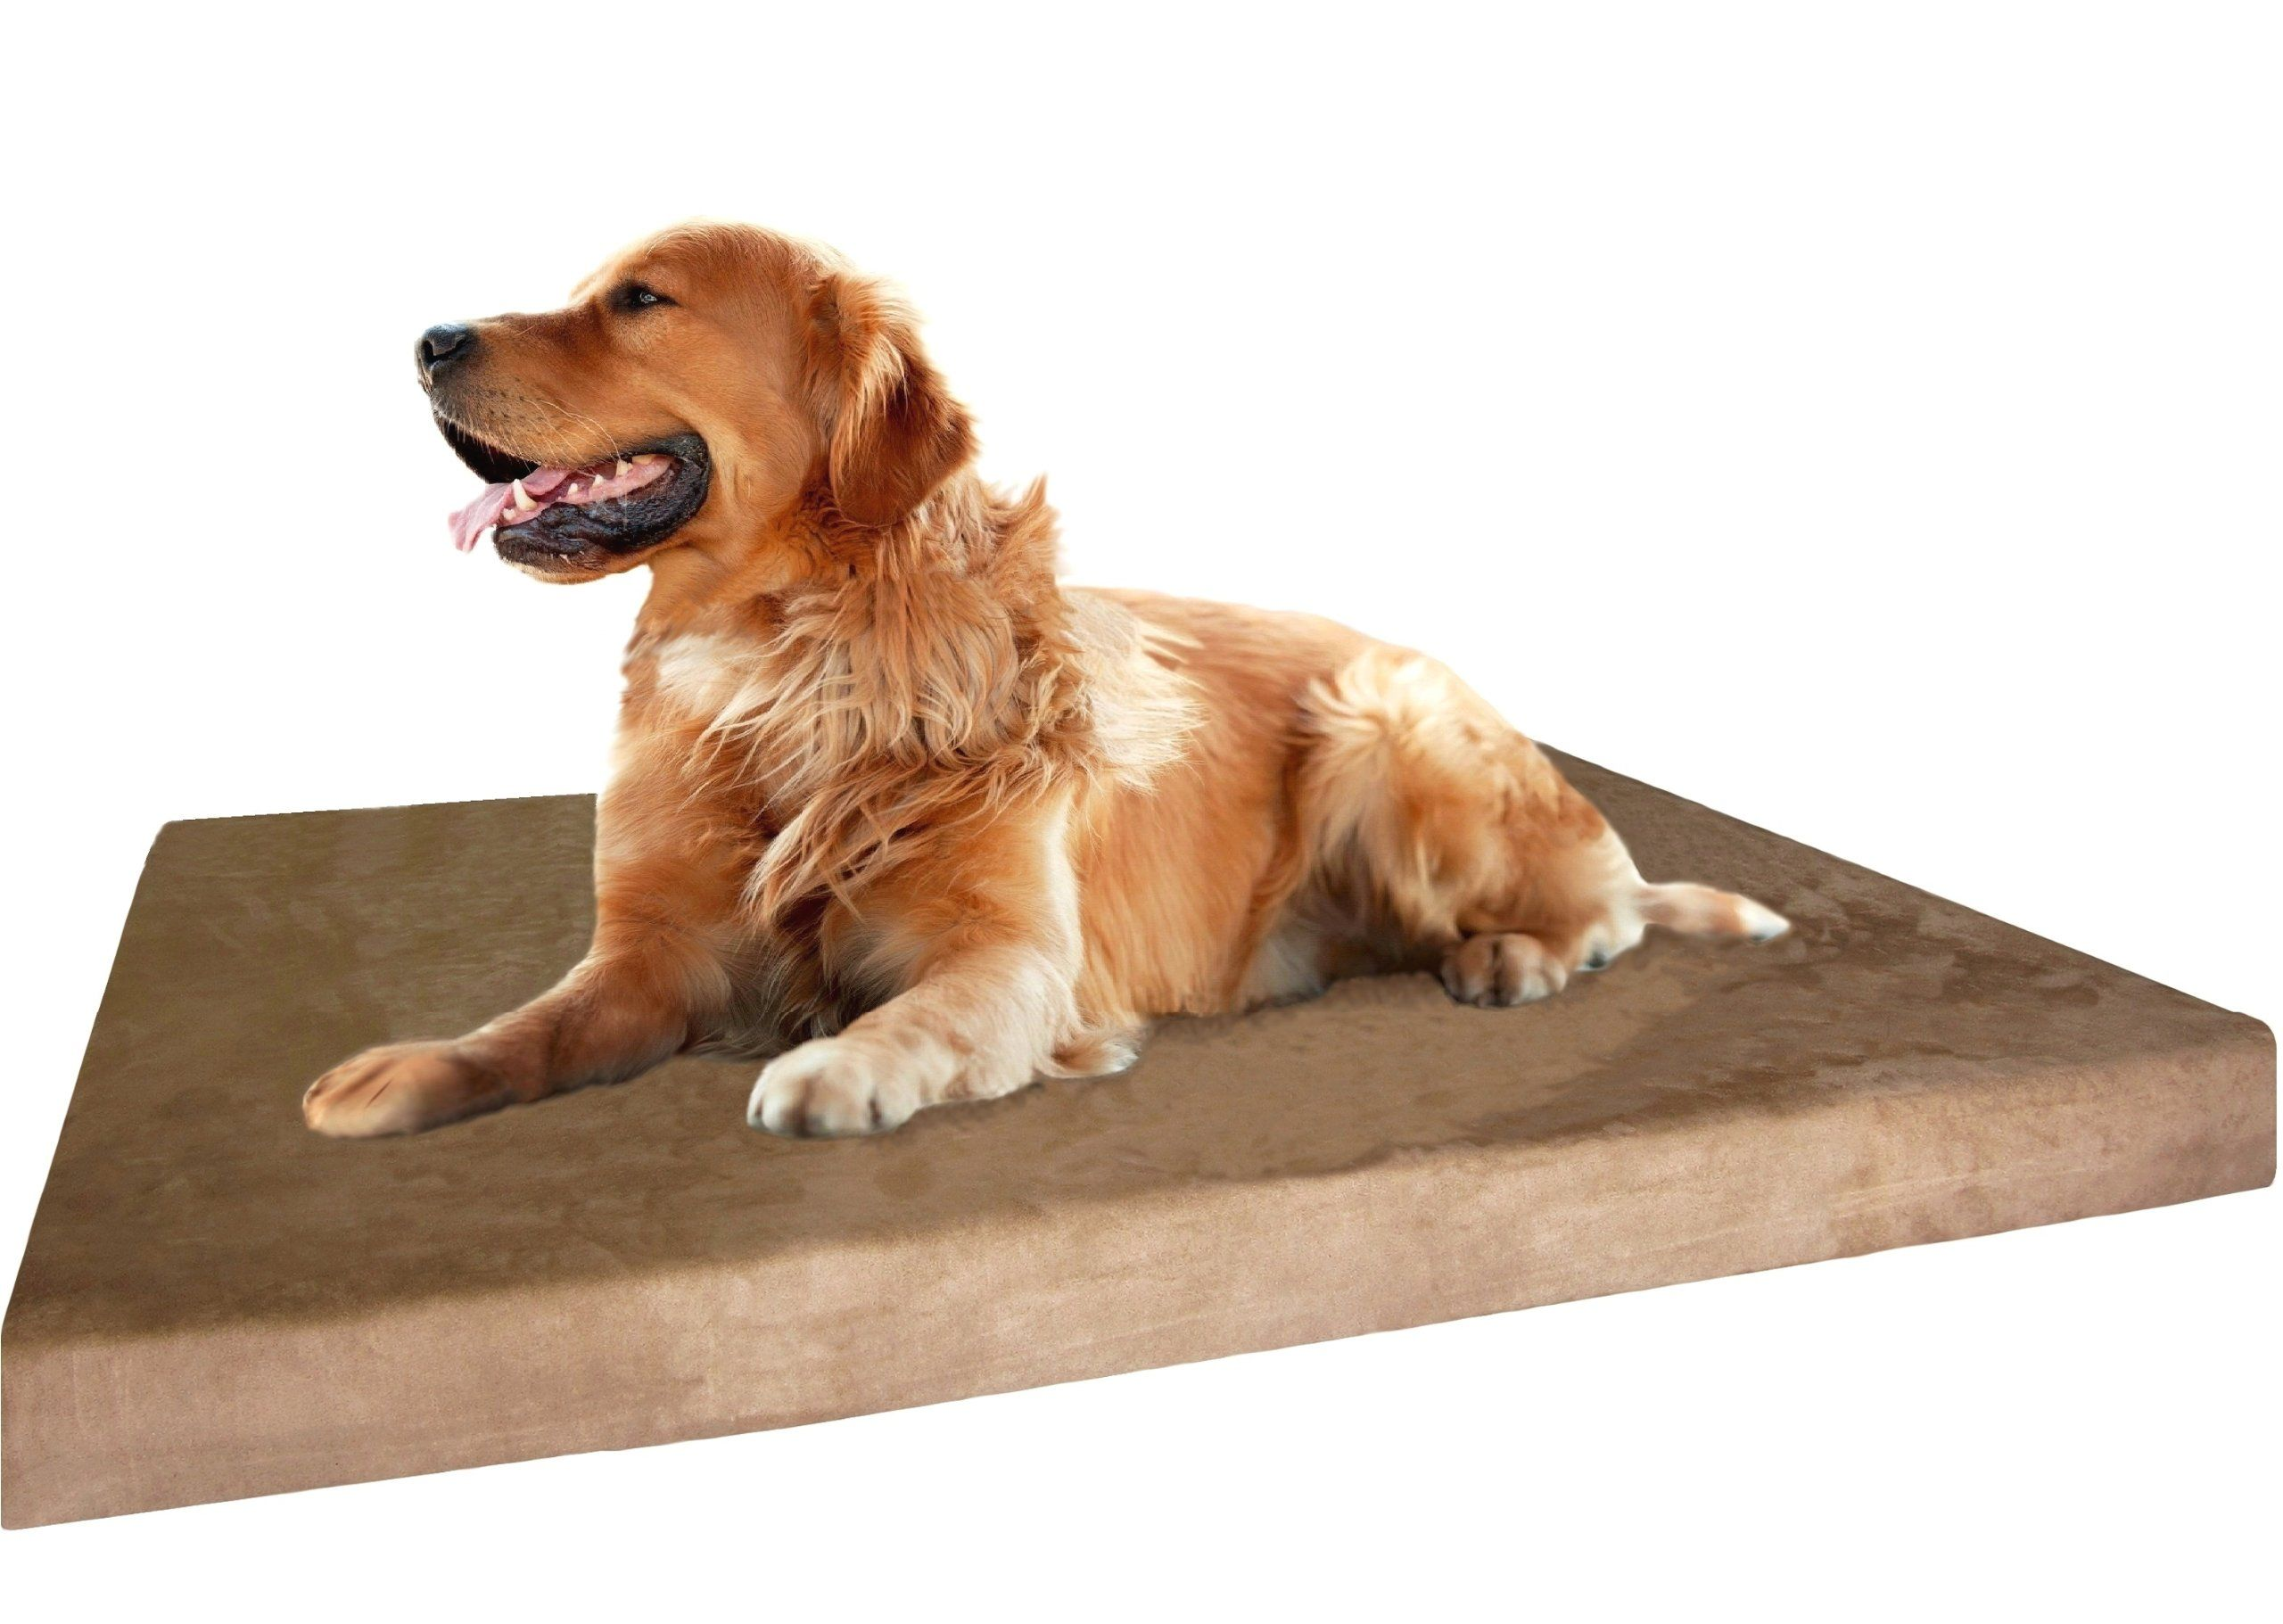 Dogbed4less Orthopedic Dog Bed with Gel Infused Memory